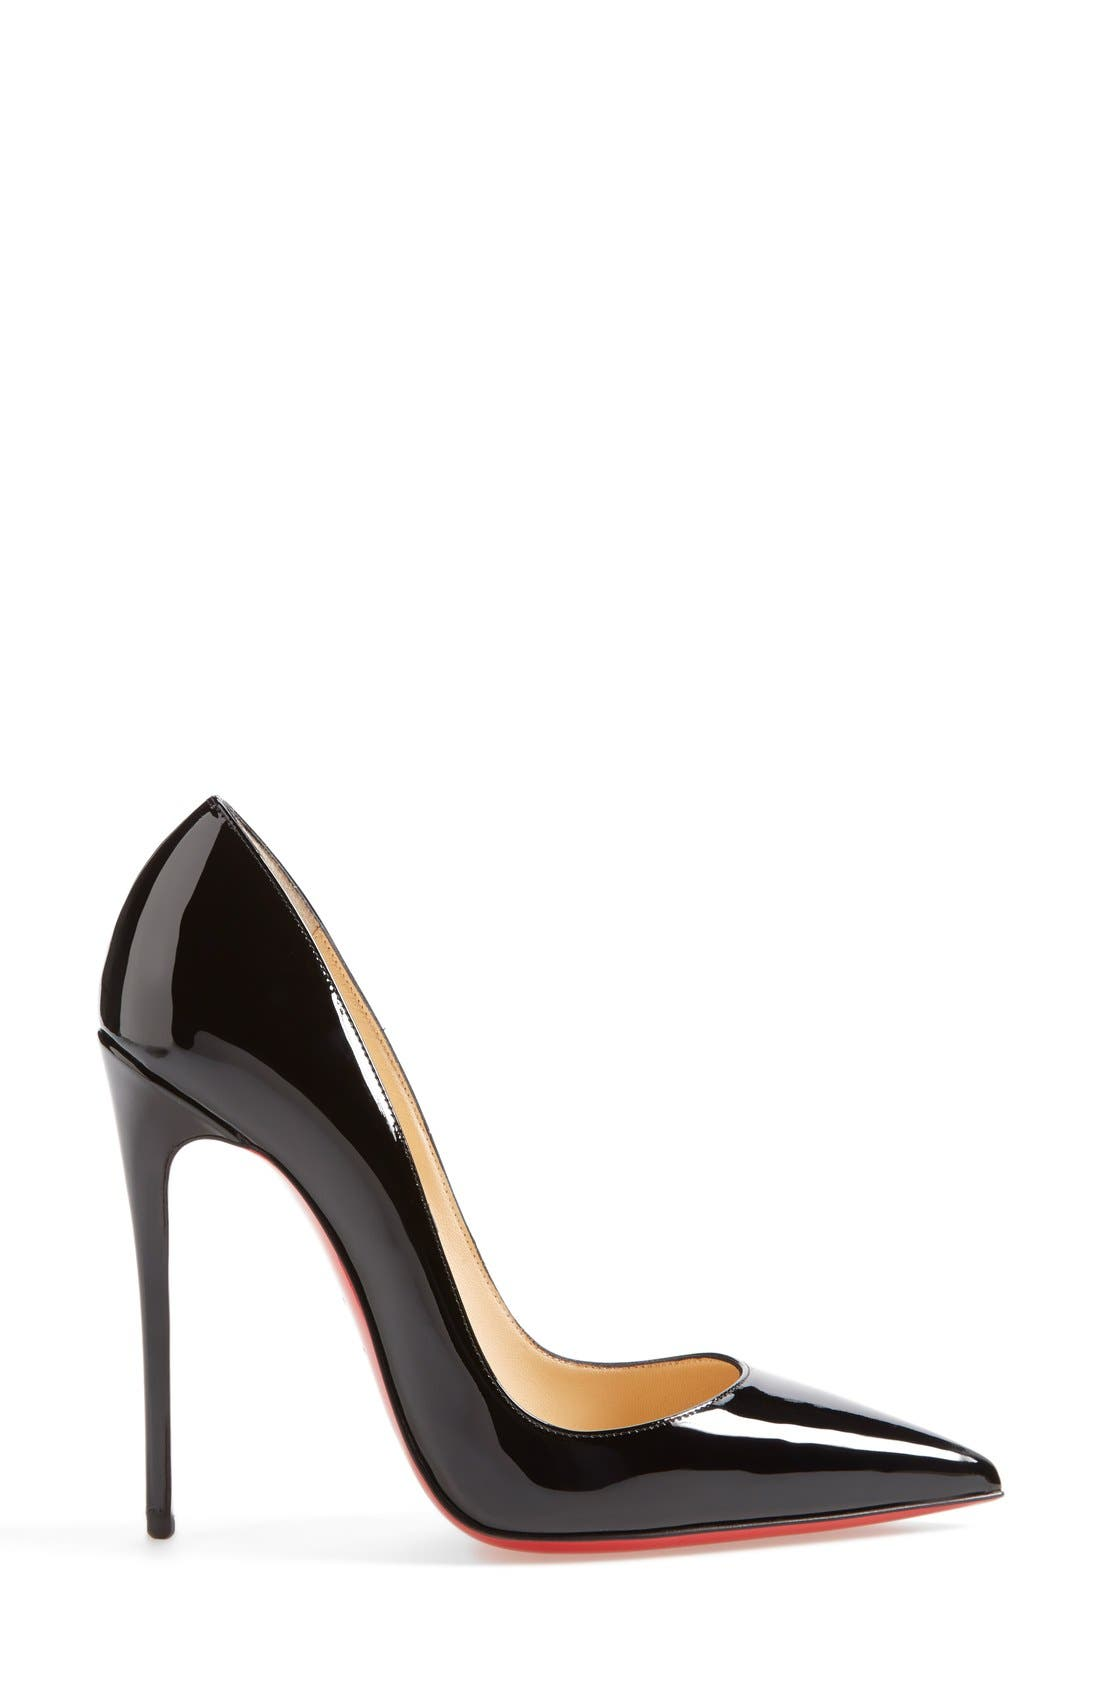 'So Kate' Pointy Toe Pump,                             Alternate thumbnail 4, color,                             BLACK